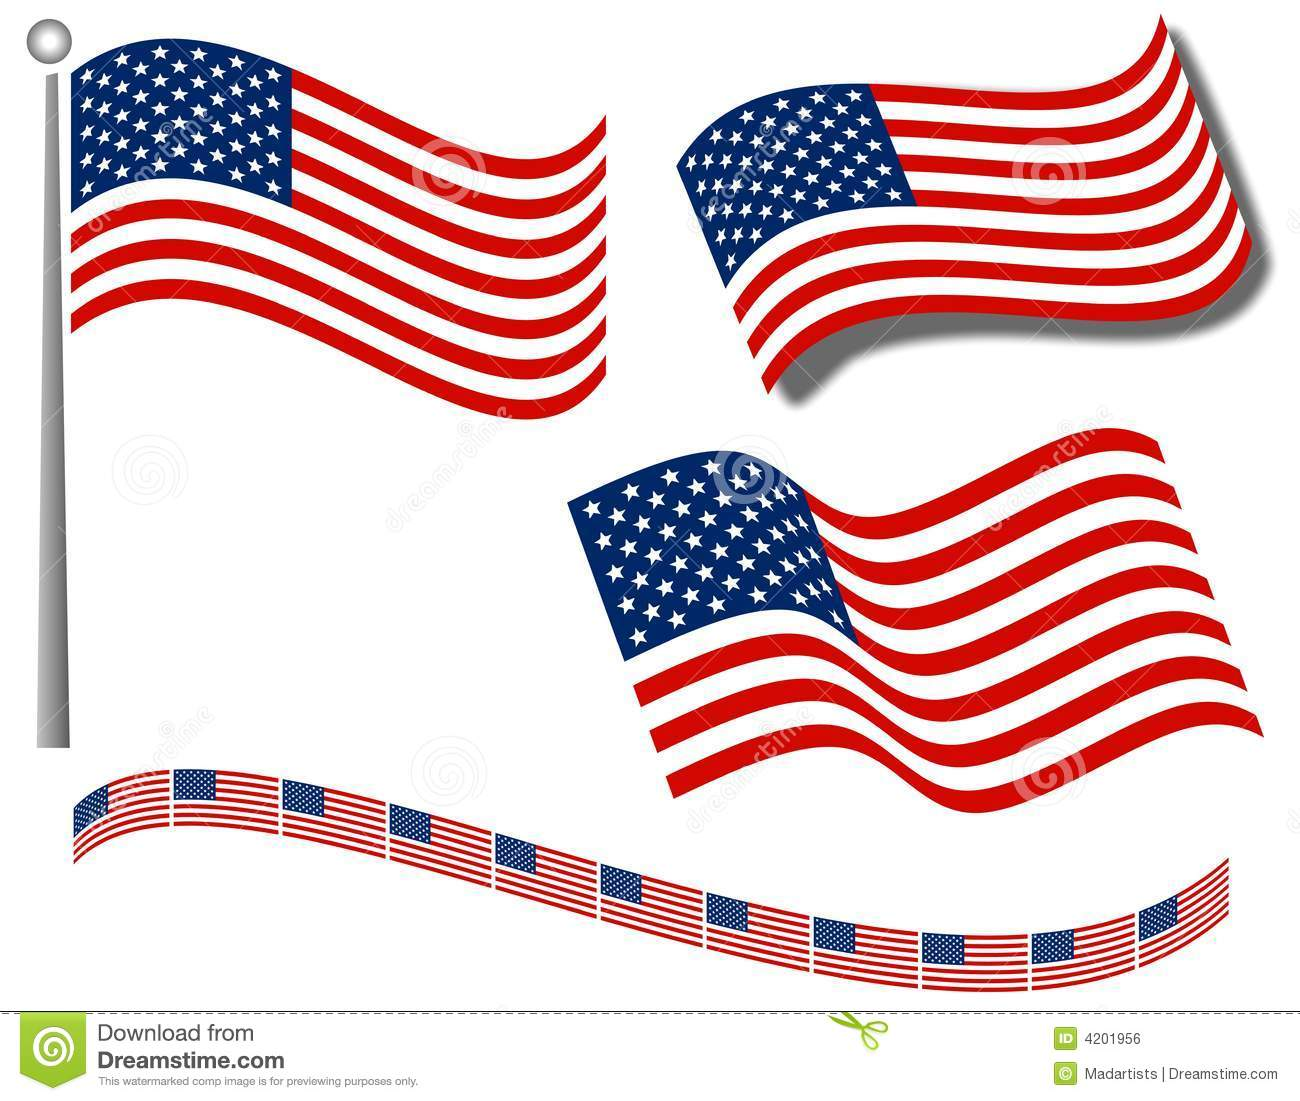 american flags clip art and divider stock illustration rh dreamstime com american flag clipart images american flag clip art pictures